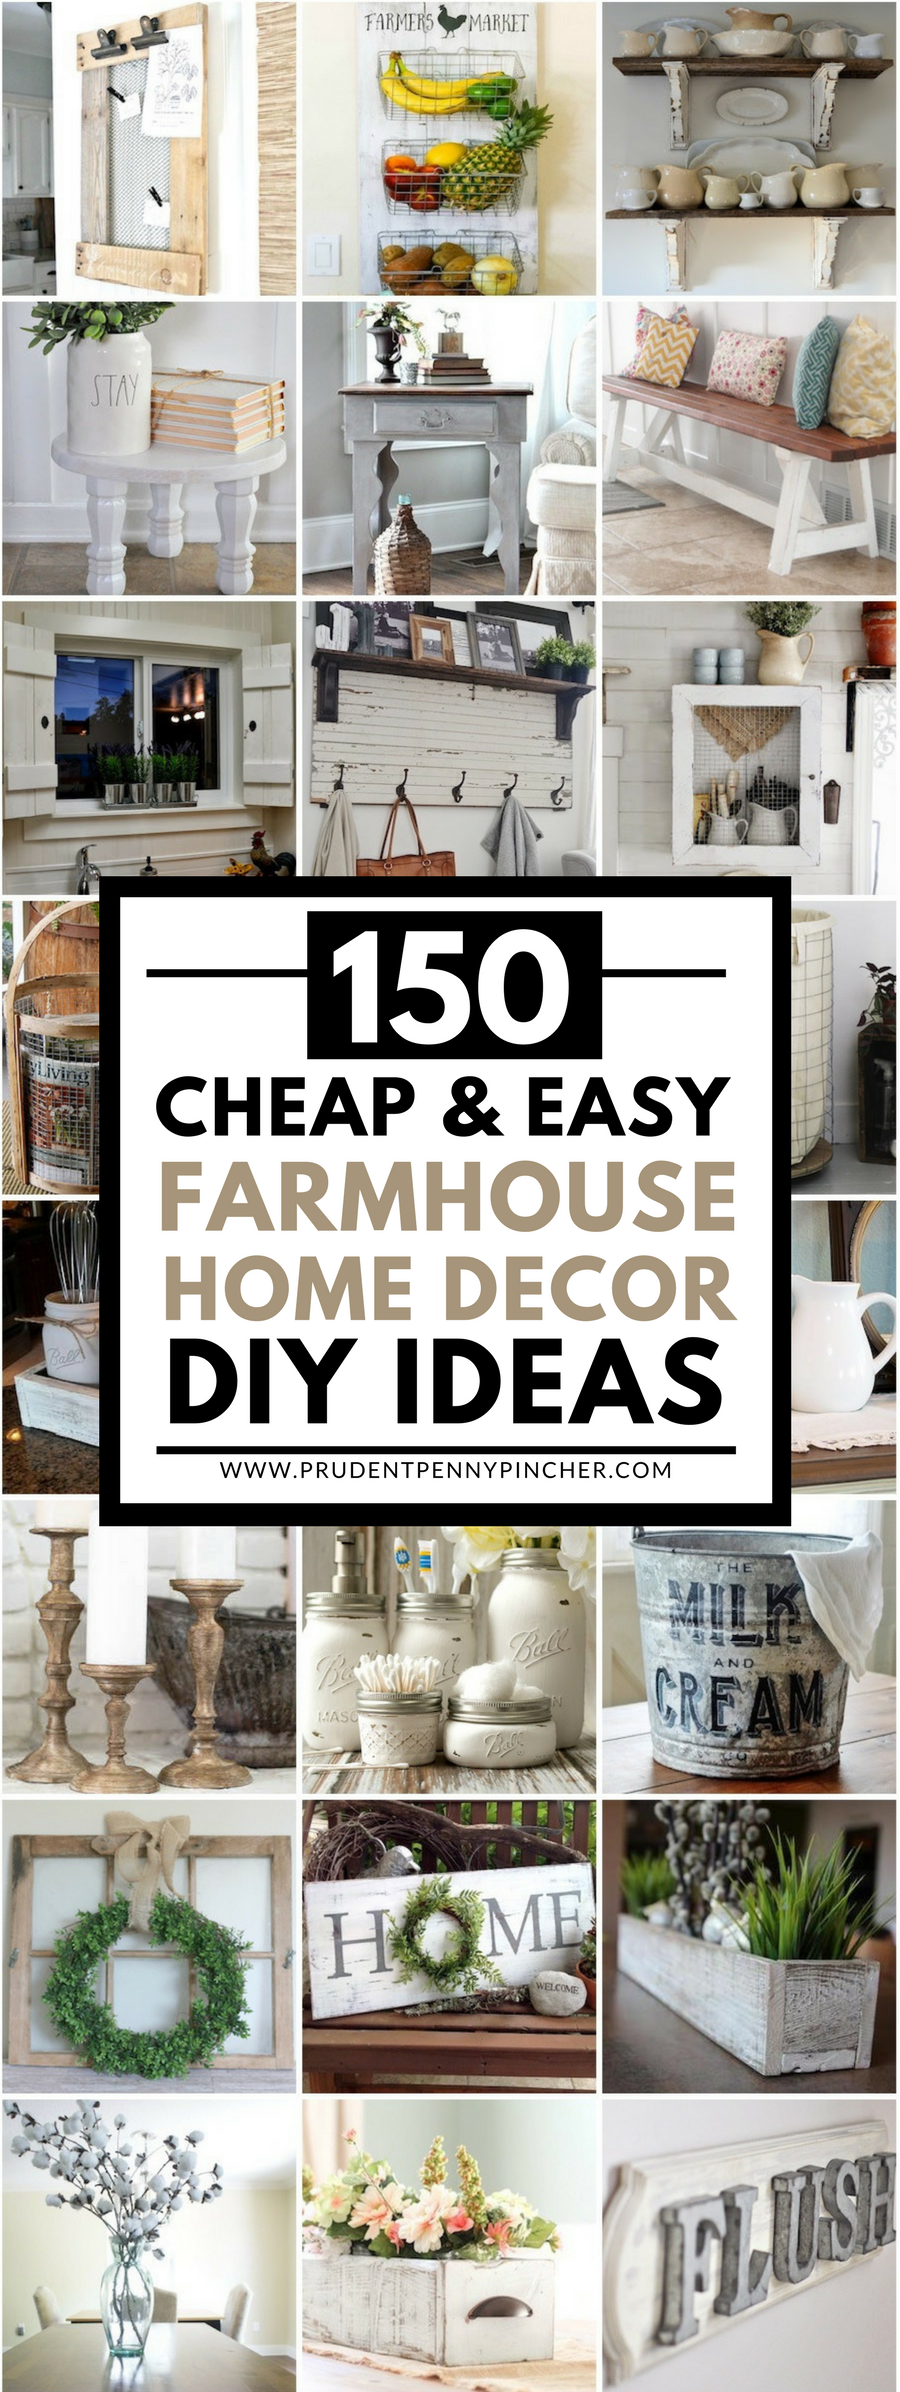 150 Cheap and Easy DIY Farmhouse Style Home Decor Ideas | Pinterest ...